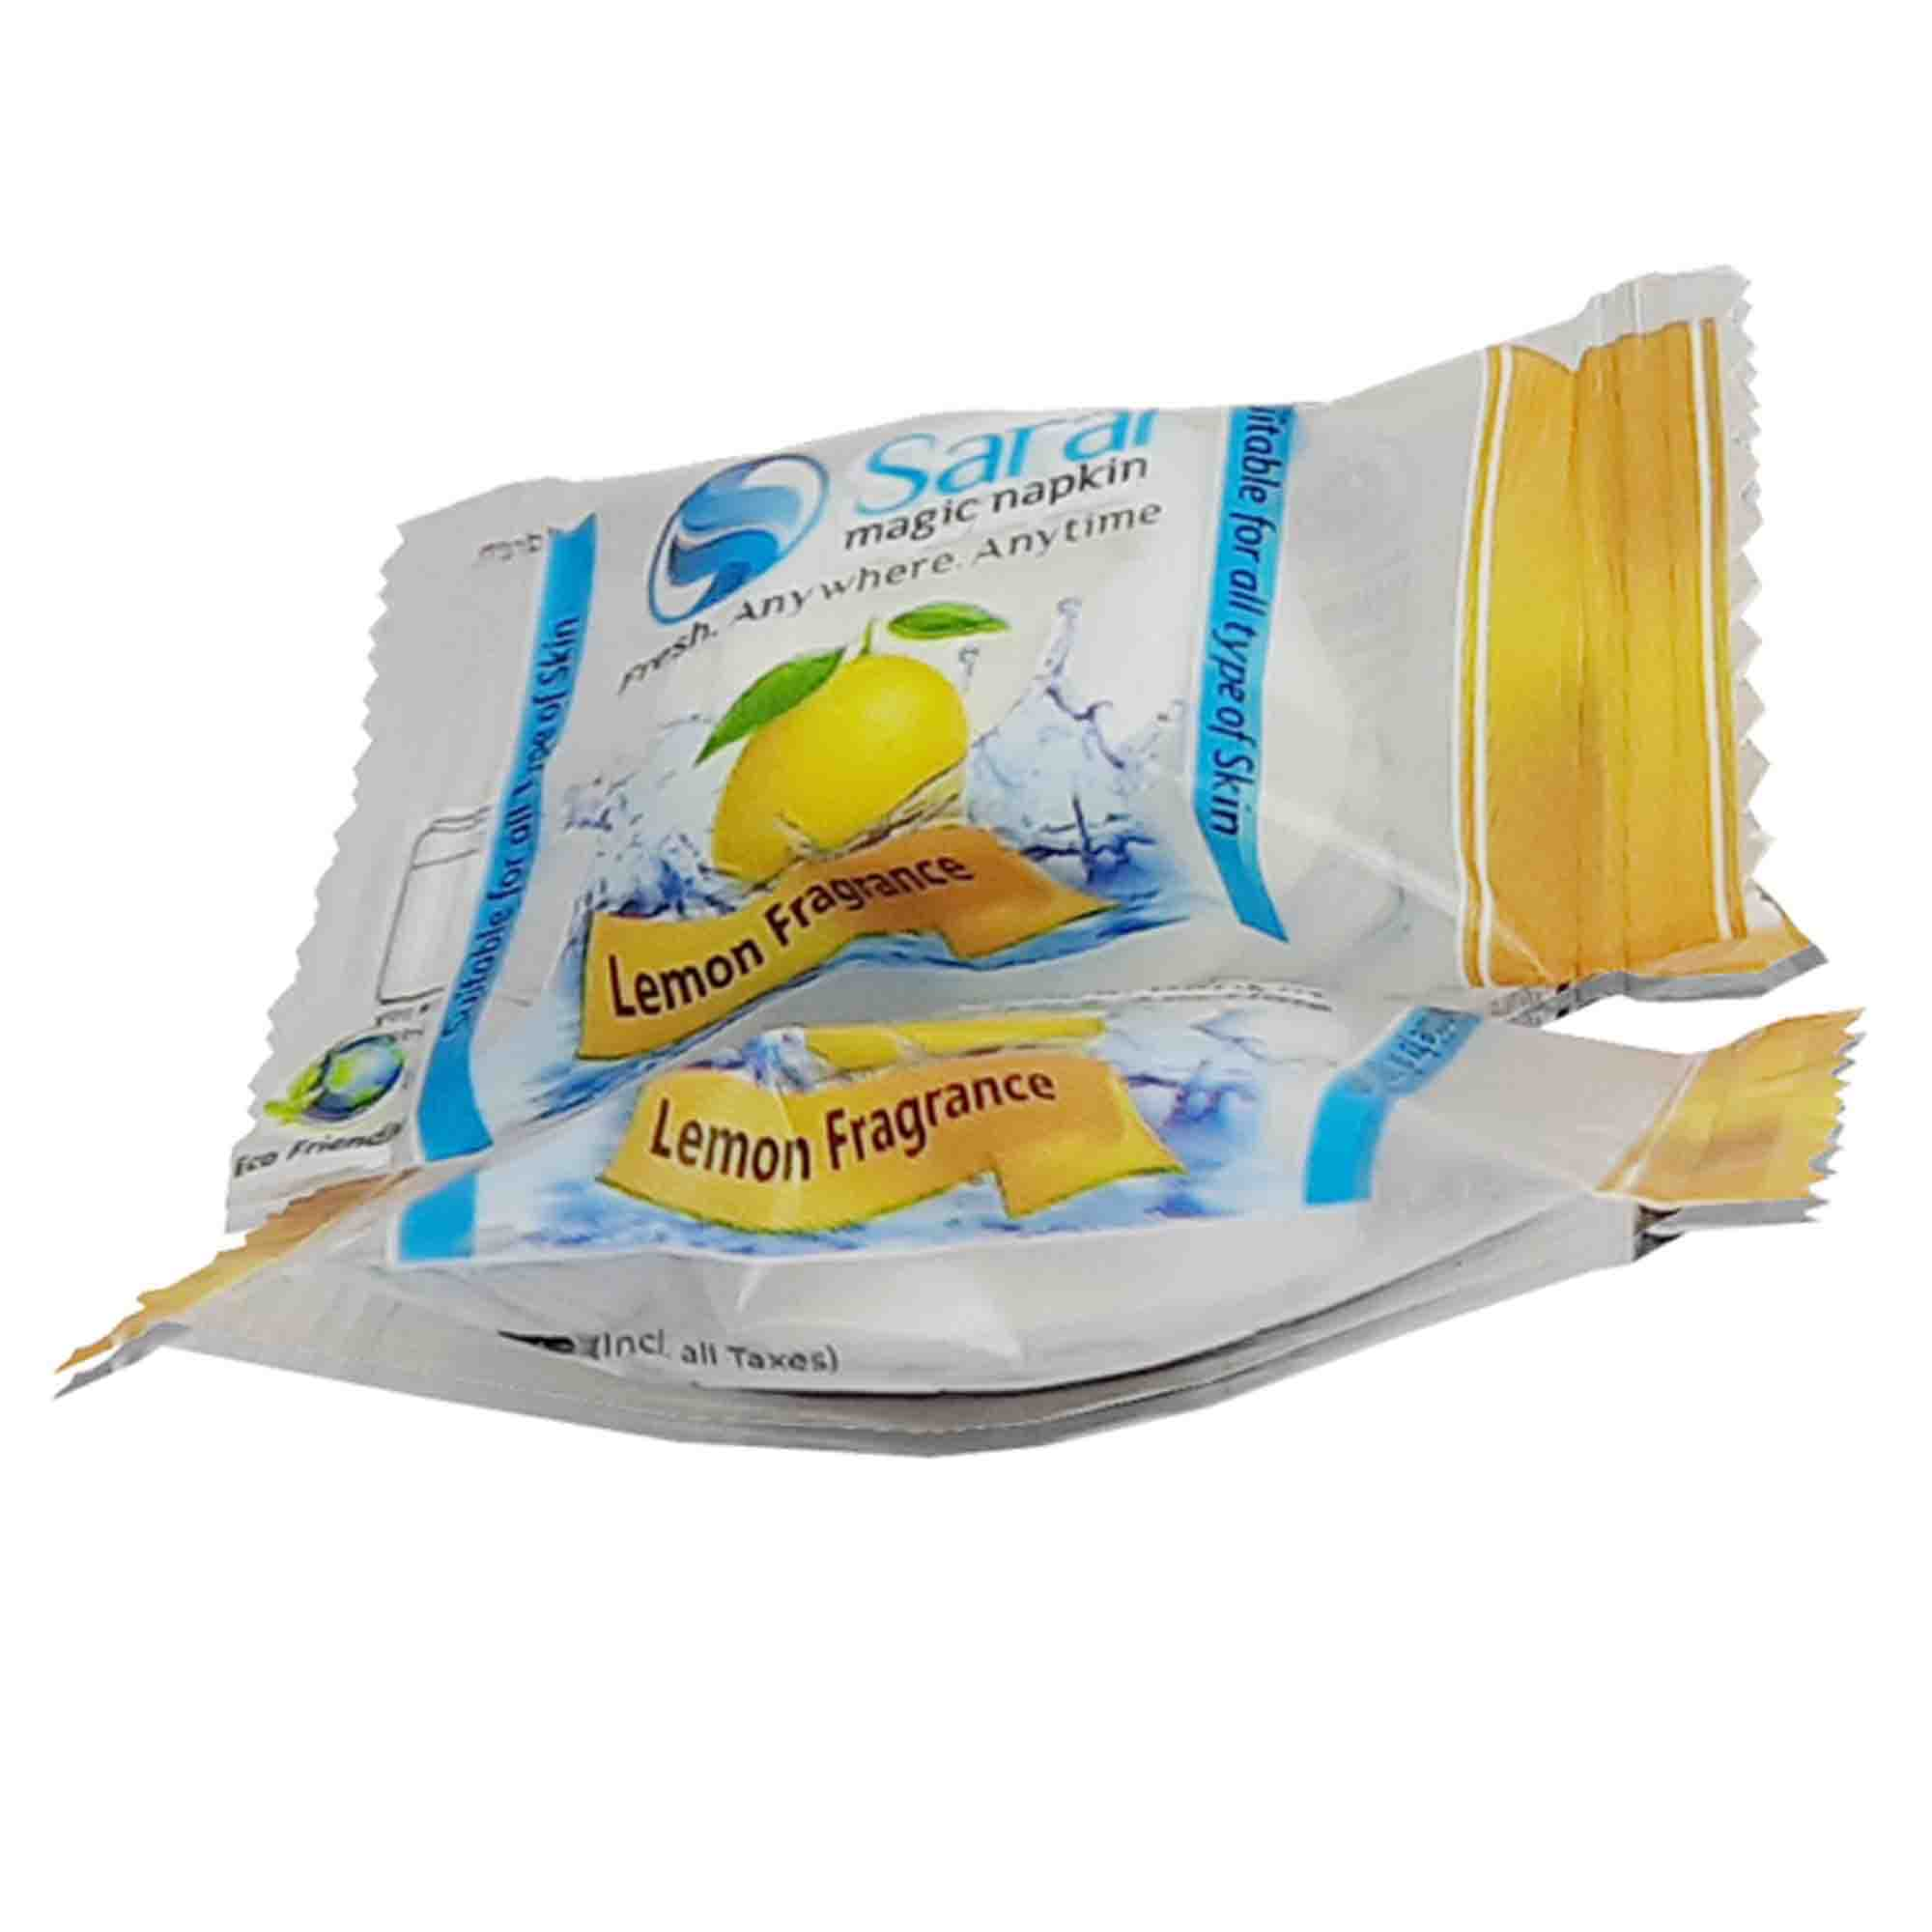 MAGIC COIN TABLET CANDY PACK FRAGRANCE LEMON FLAVOUR magic coin tablet lemon flavour, saral, saral magic napkin, saral magic tablet napkin, saral magic napkin price, magic napkin manufacturer, saral premium fabric napkins, swaroop industries, cotton tablet, tablet tissue manufacturers, Saral Magic Napkin ,Tablet Napkins Lemon , apnagharmart , apnagharmart.com